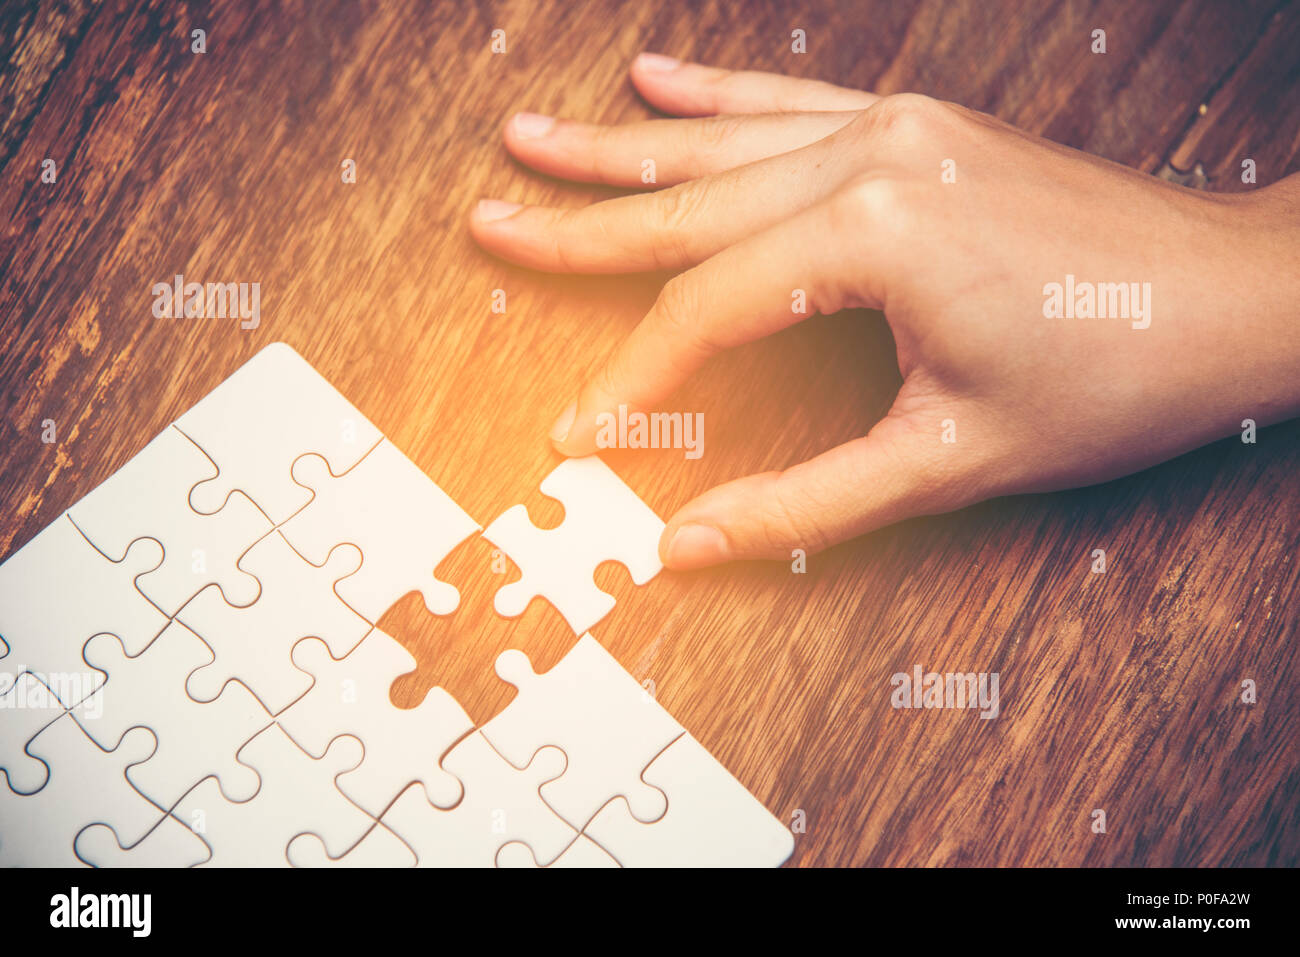 close up of hand placing the last jigsaw puzzle piece hand holding